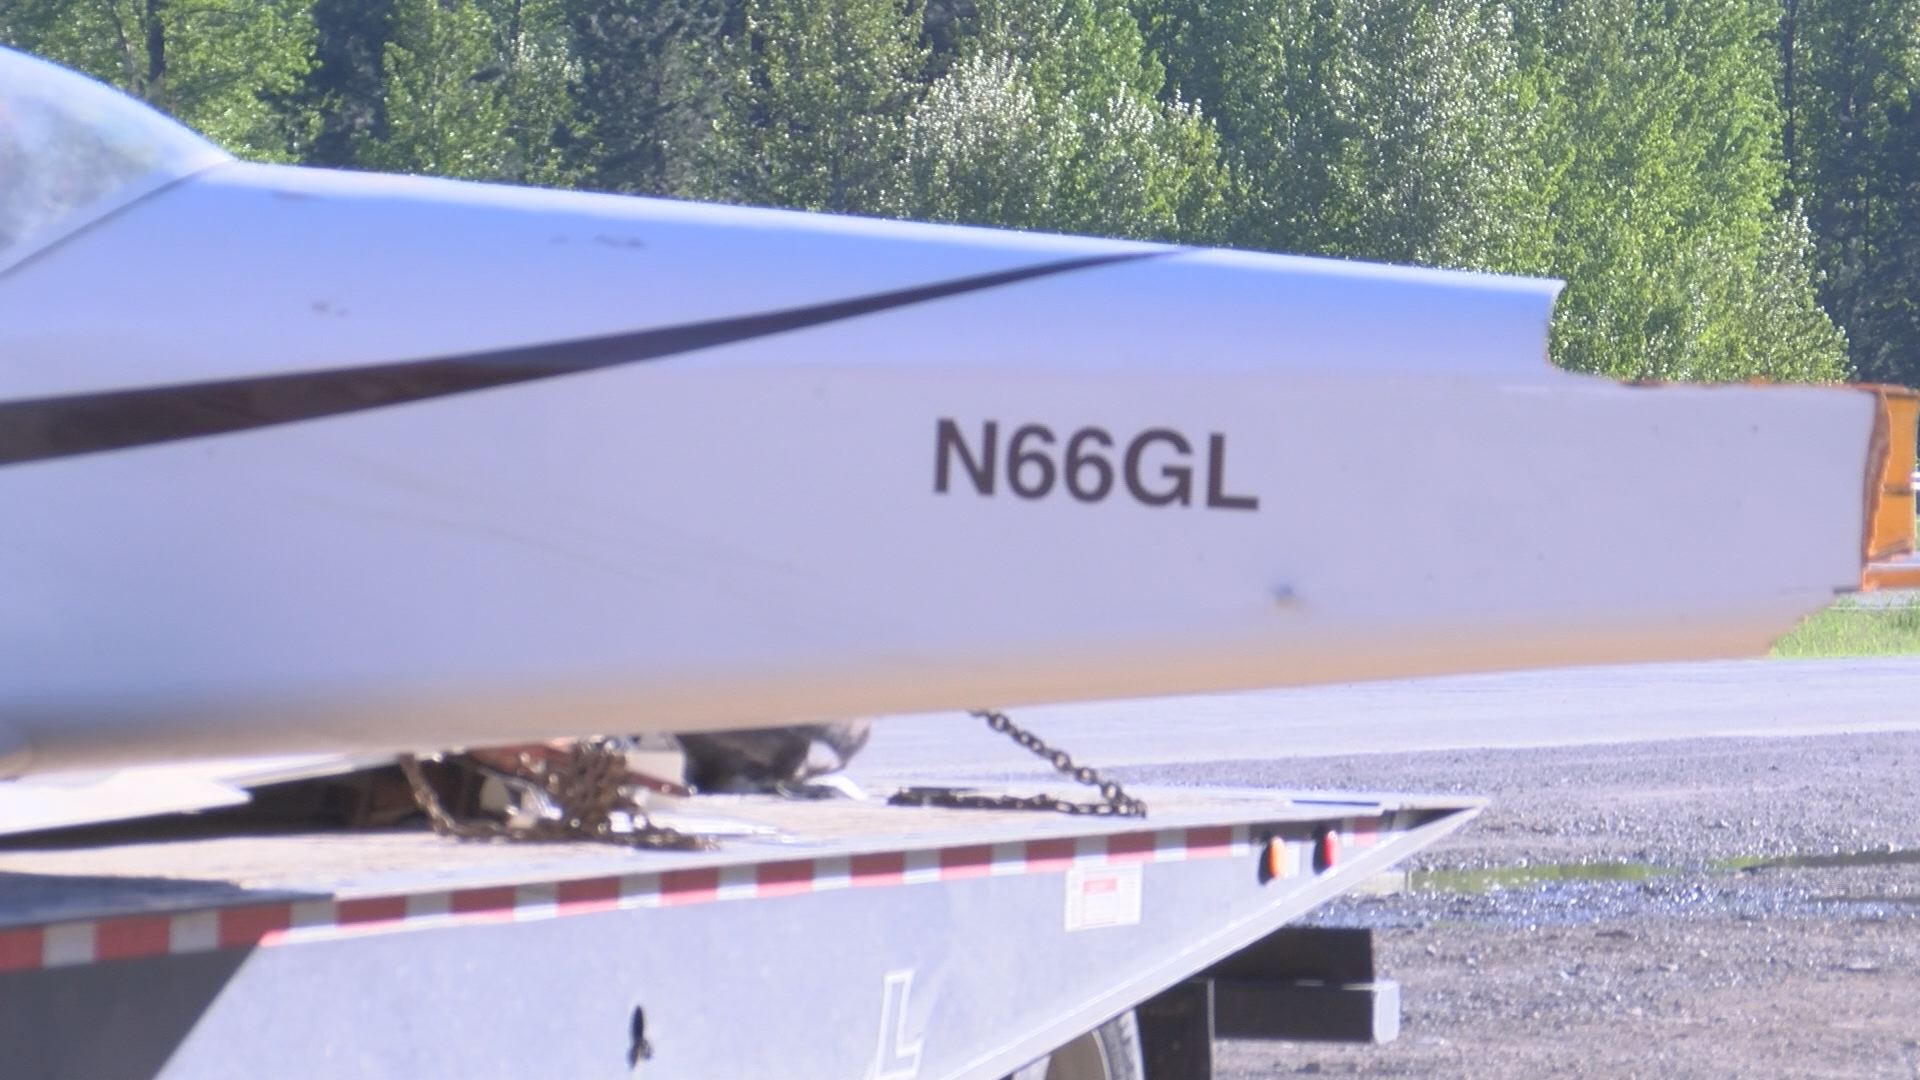 Tail of the wing that broke off when the plane crash landed on Interstate 90